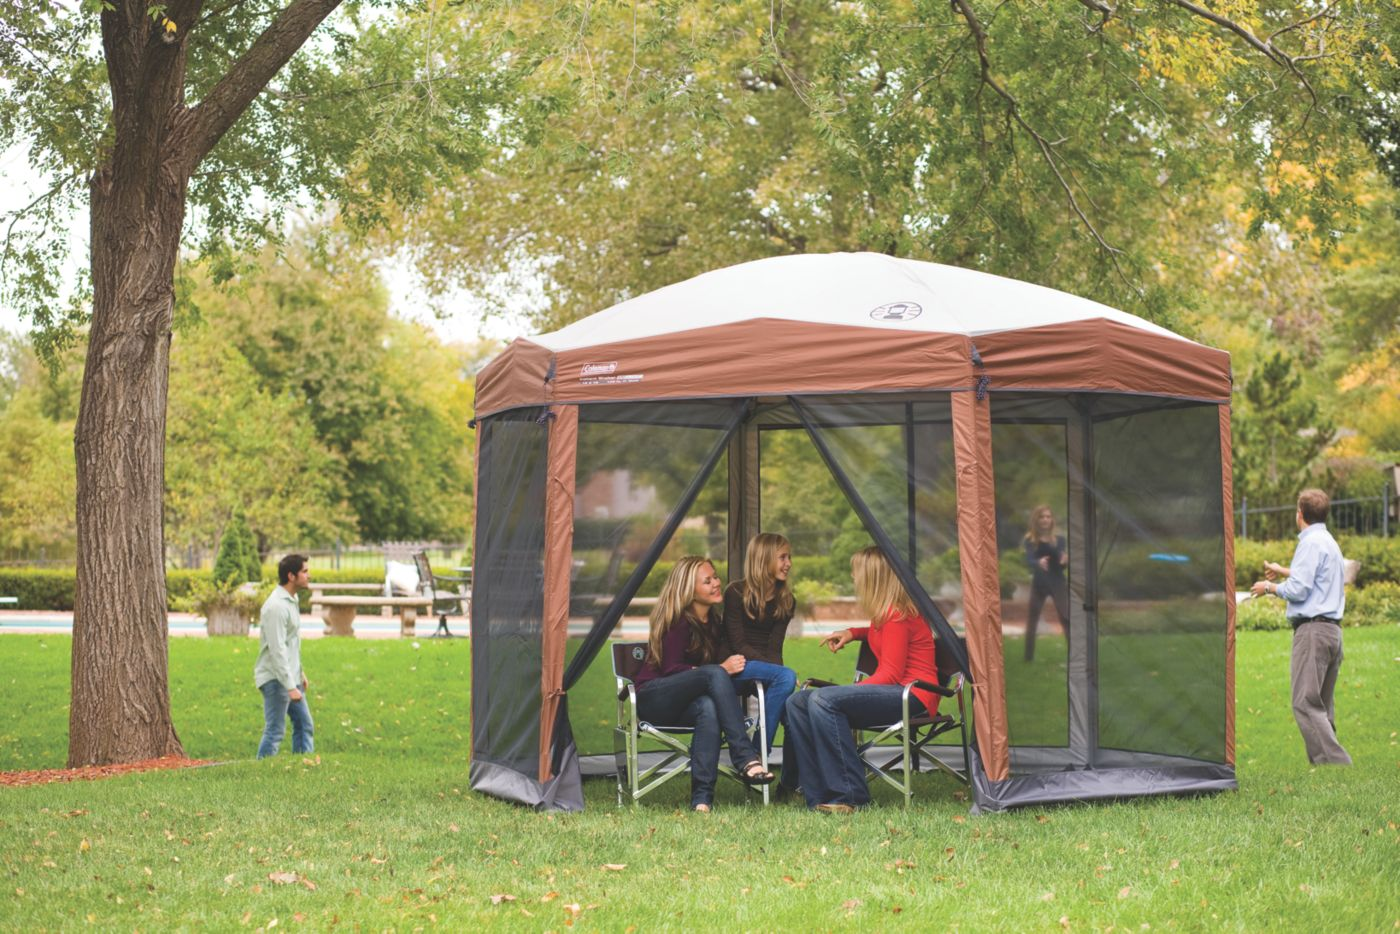 ... Back Home™ 12 x 10 Instant Screenhouse ...  sc 1 st  Coleman & Screened Canopy | Instant Canopy | Coleman